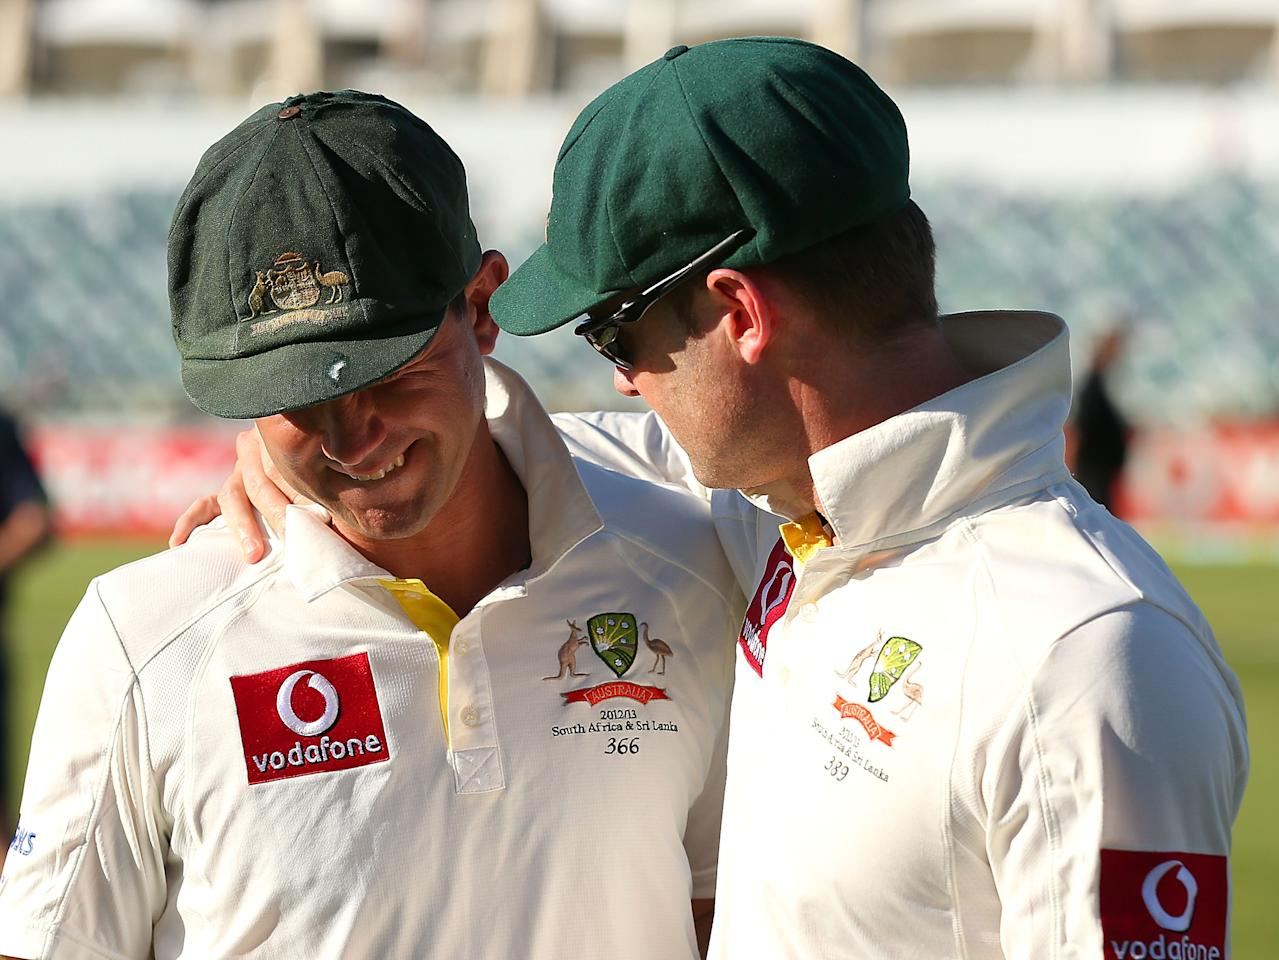 PERTH, AUSTRALIA - DECEMBER 03:  Ricky Ponting and Michael Clarke of Australia share a moment after being defeated by South Africa during day four of the Third Test Match between Australia and South Africa at WACA on December 3, 2012 in Perth, Australia.  (Photo by Paul Kane/Getty Images)